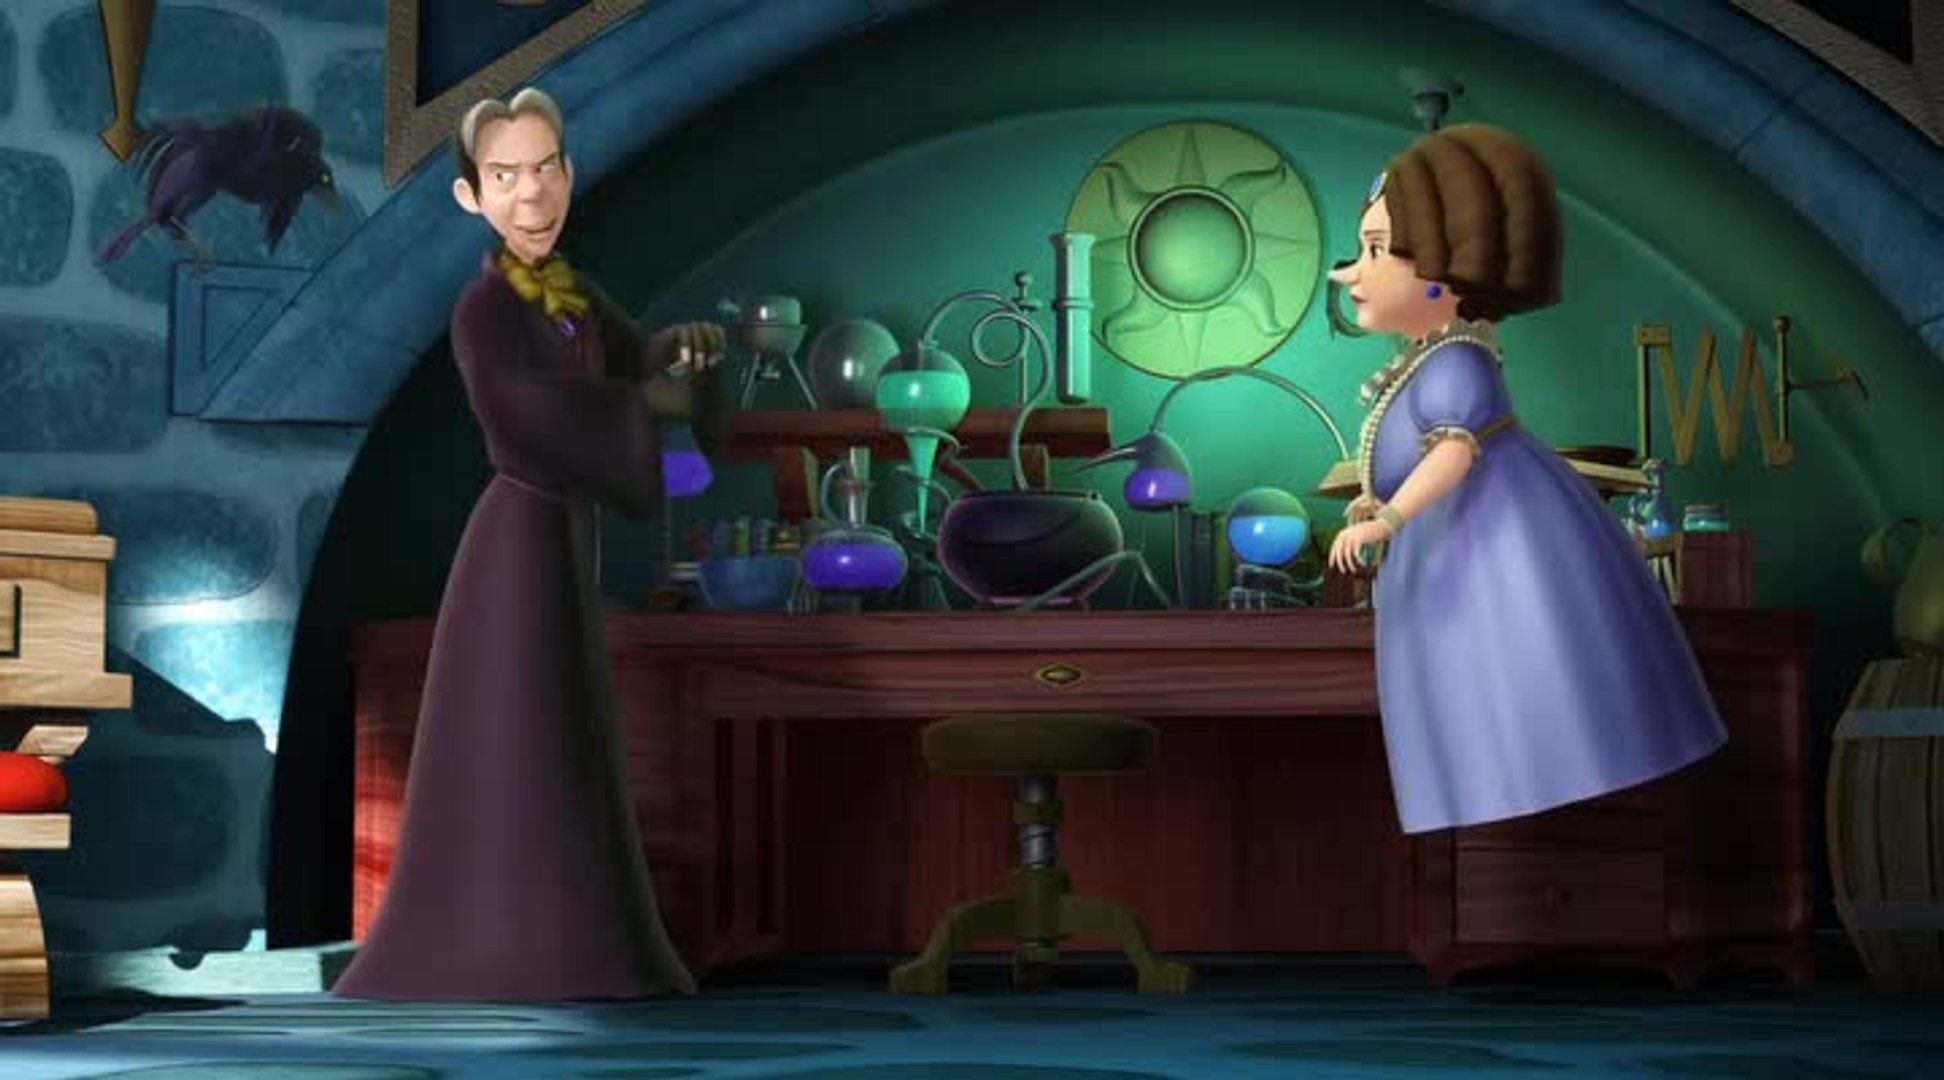 Sofia The First S 3 E 3 Cedric Be Good Video Dailymotion